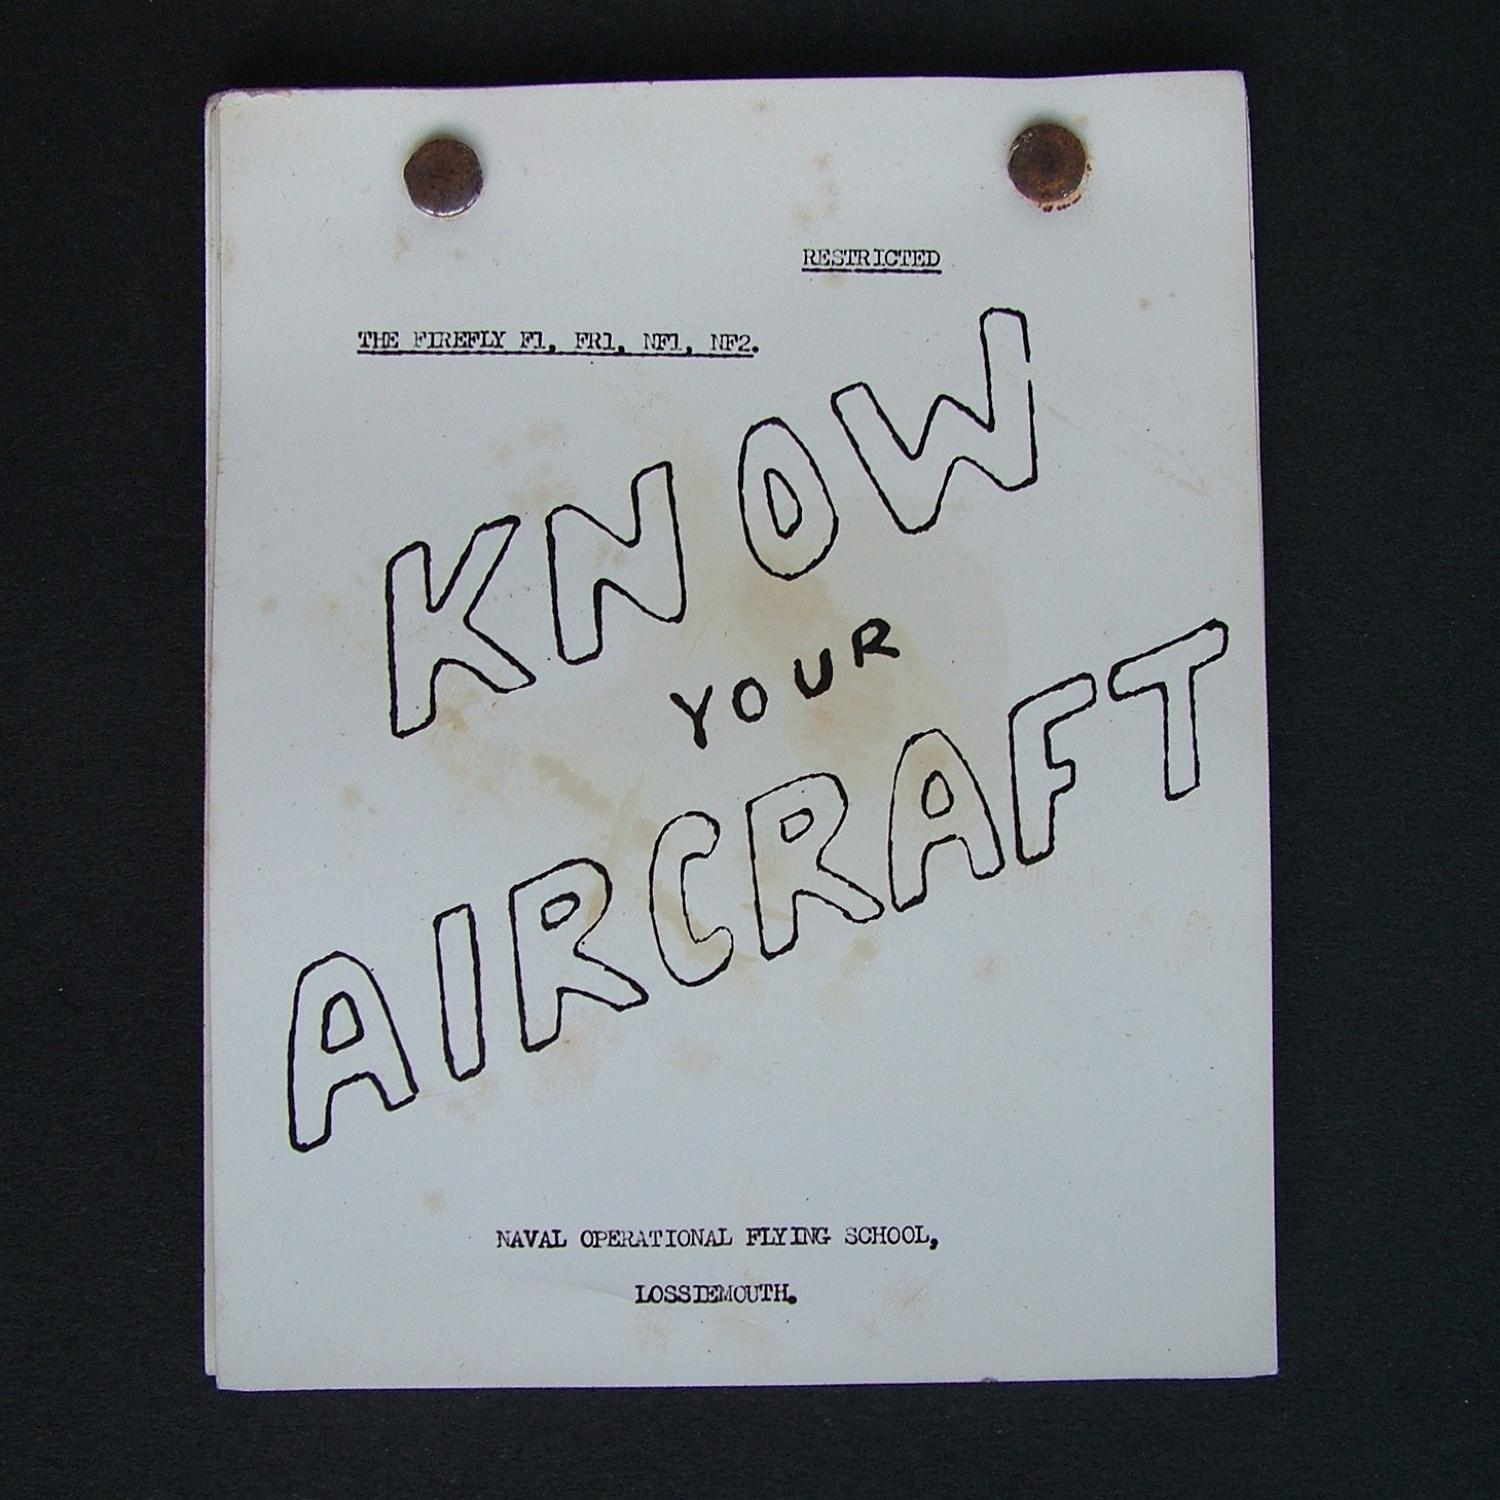 FAA Know Your Aircraft - Firefly pilots notes